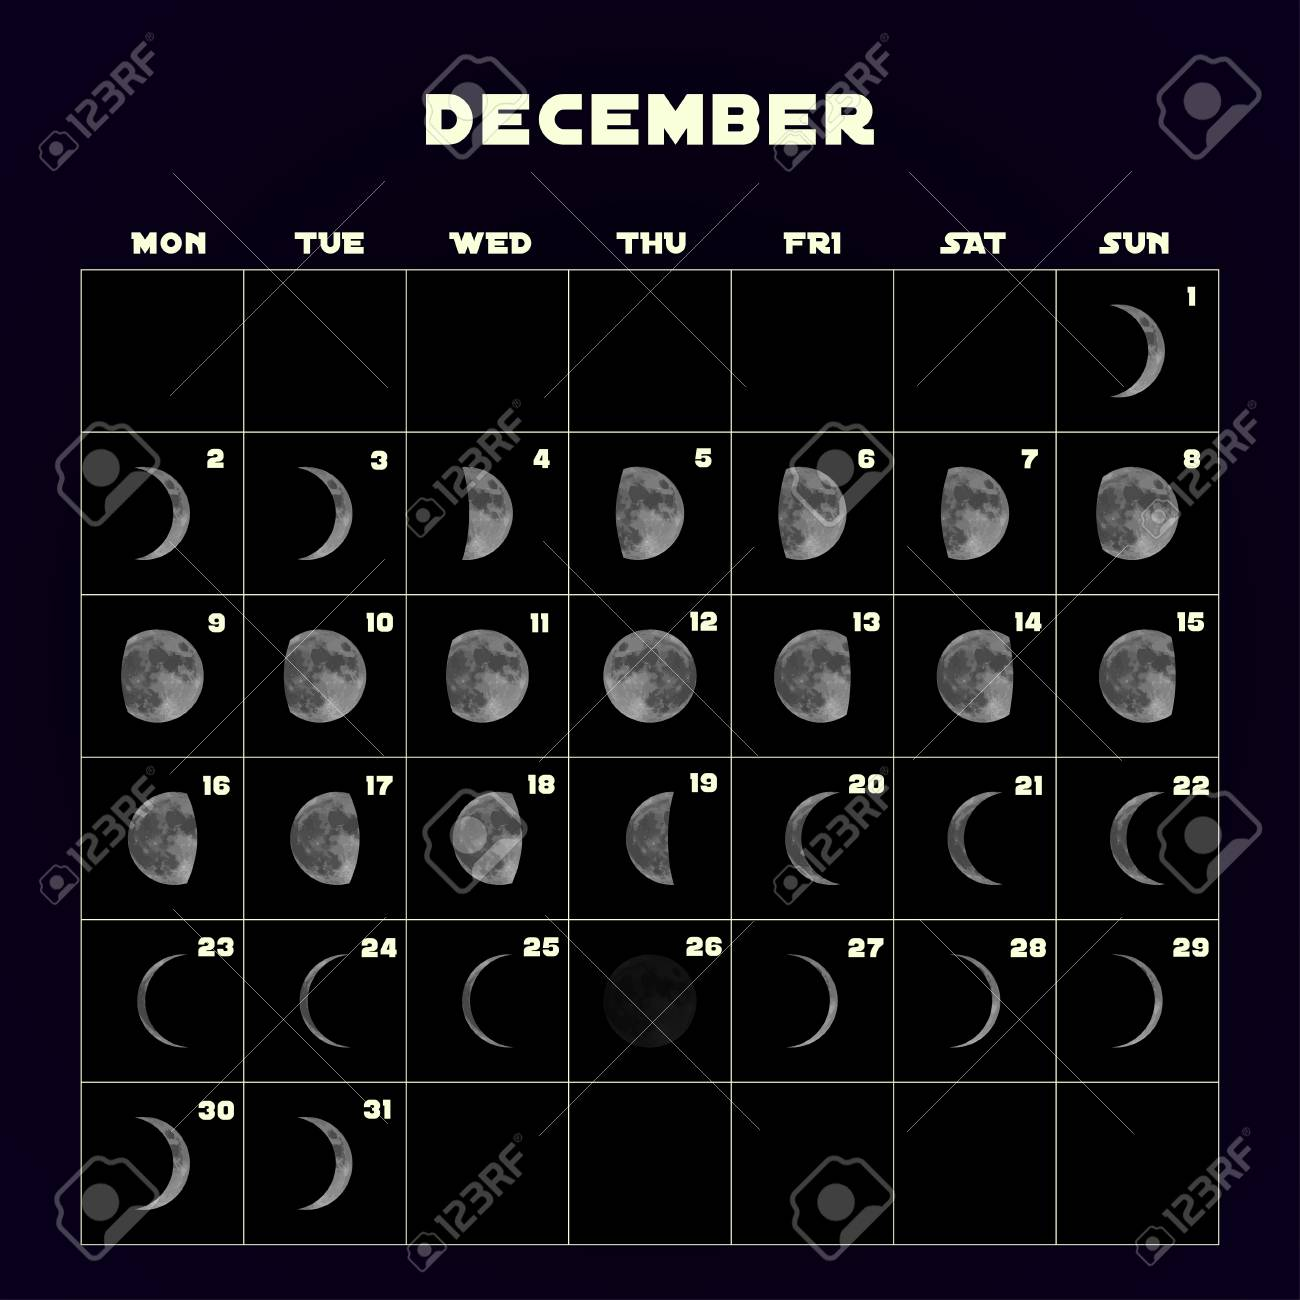 Moon Cycle Calendar December 2019 Moon Phases Calendar For 2019 With Realistic Moon. December